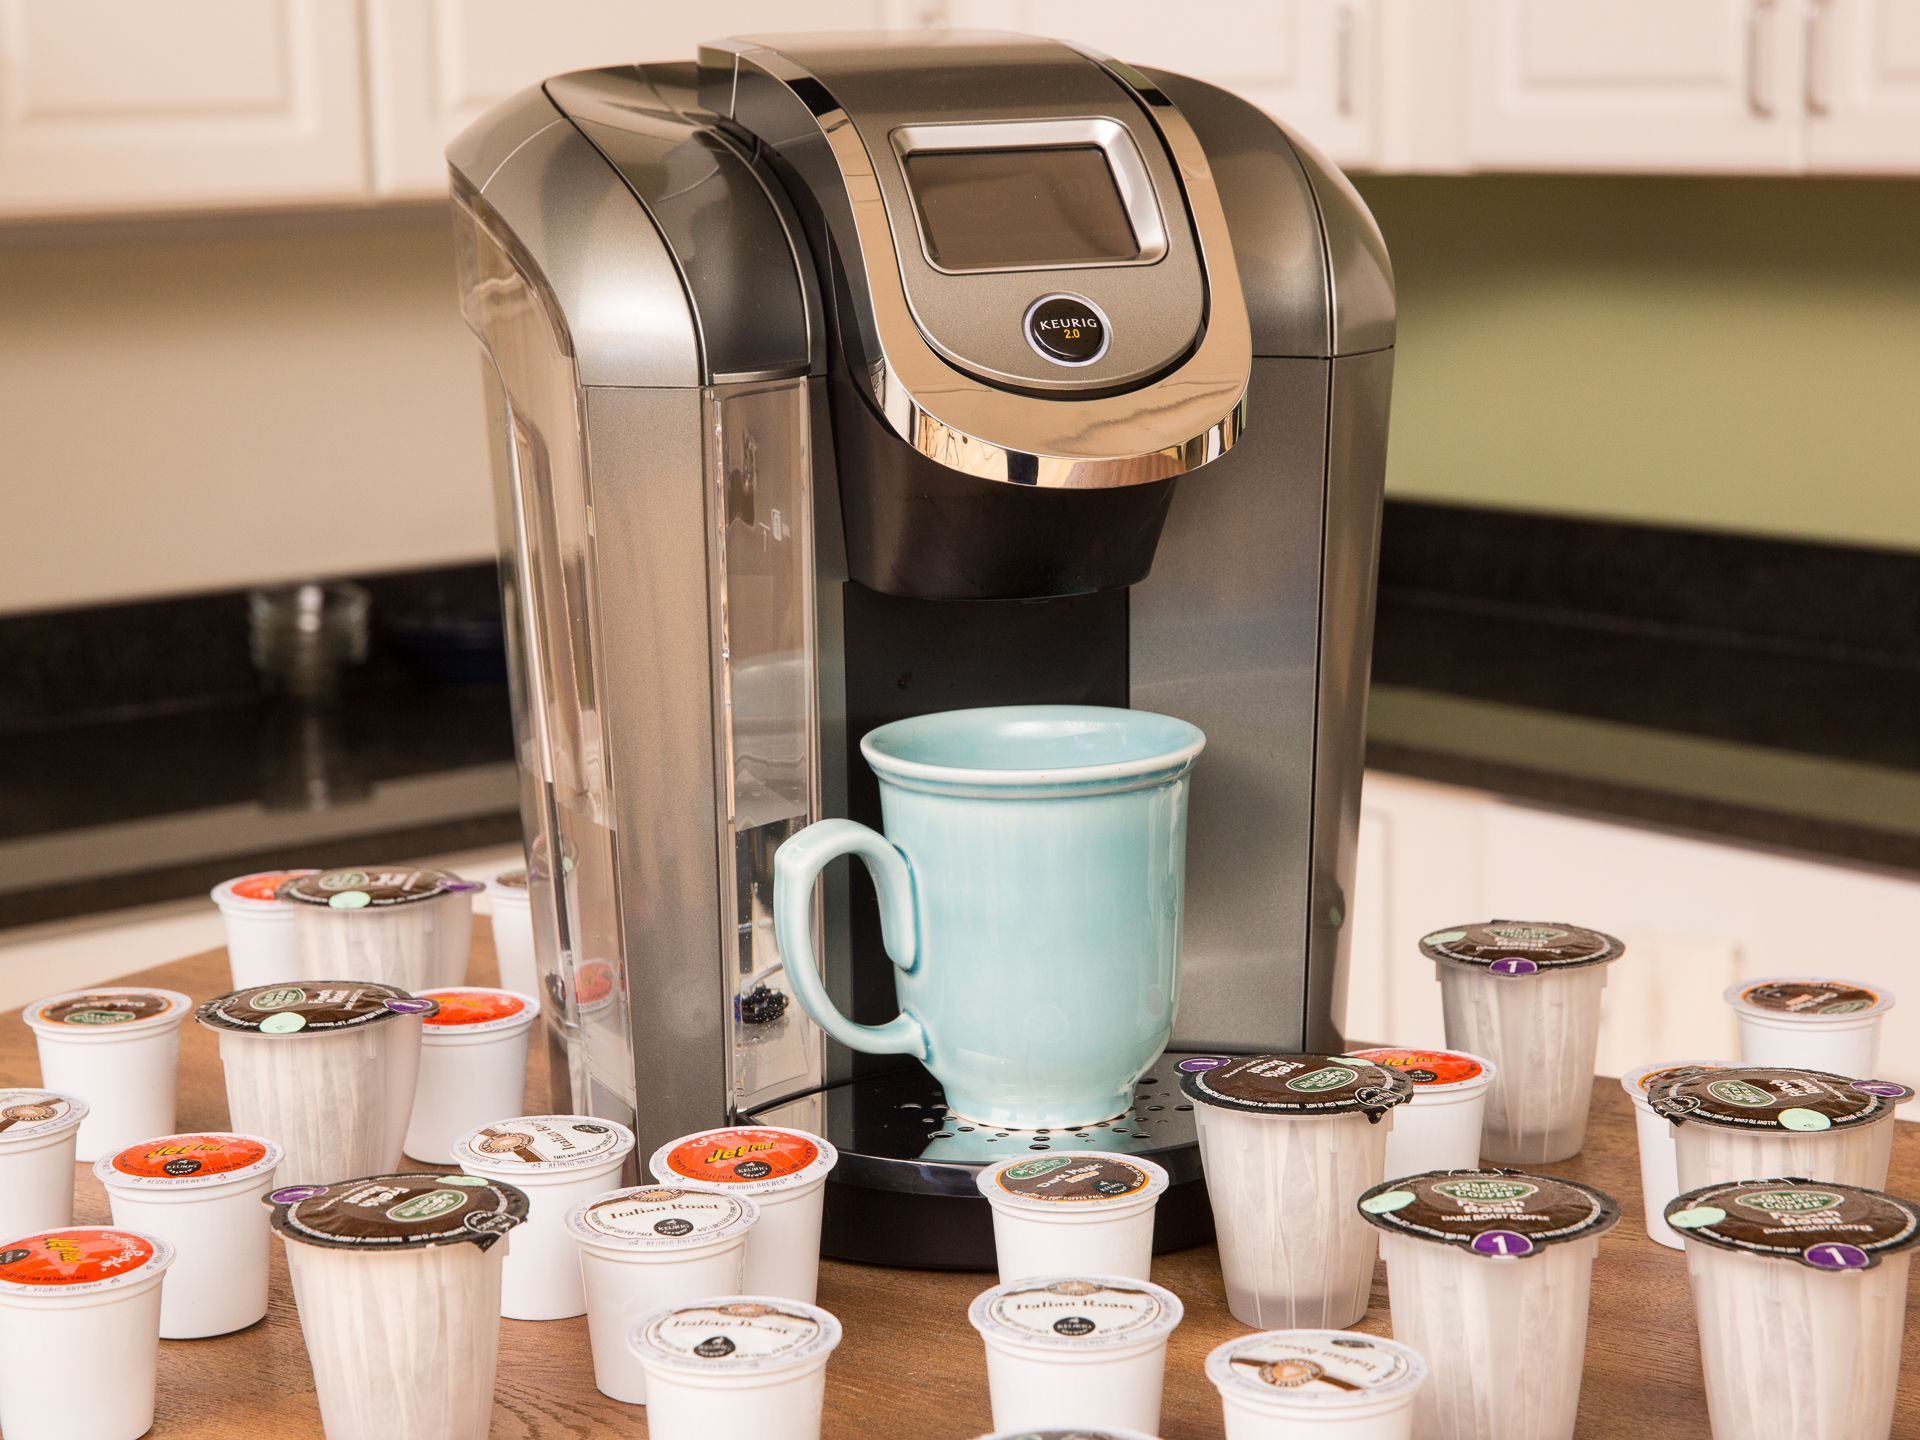 How To Change The Keurig Water Filter